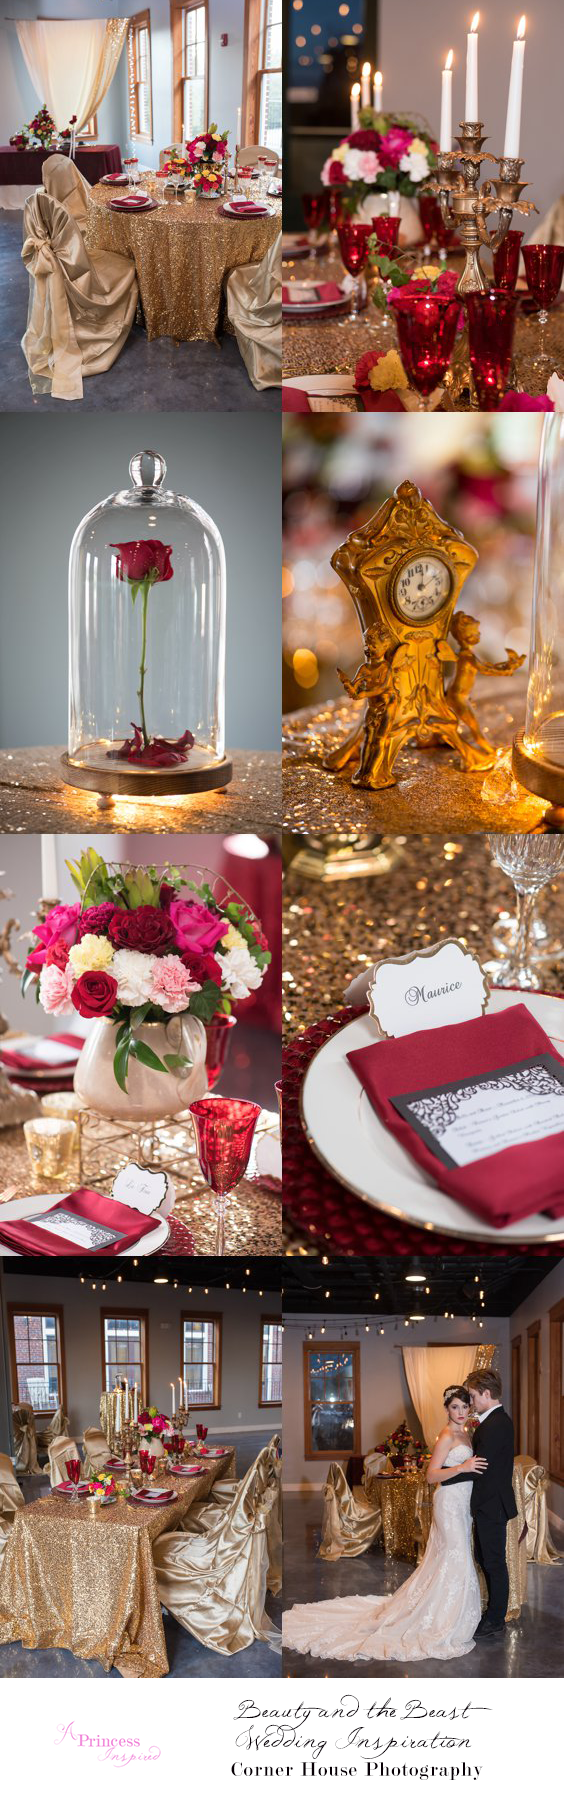 Beauty and the Beast Wedding Inspiration - A Princess Inspired Blog | Corner House Photography